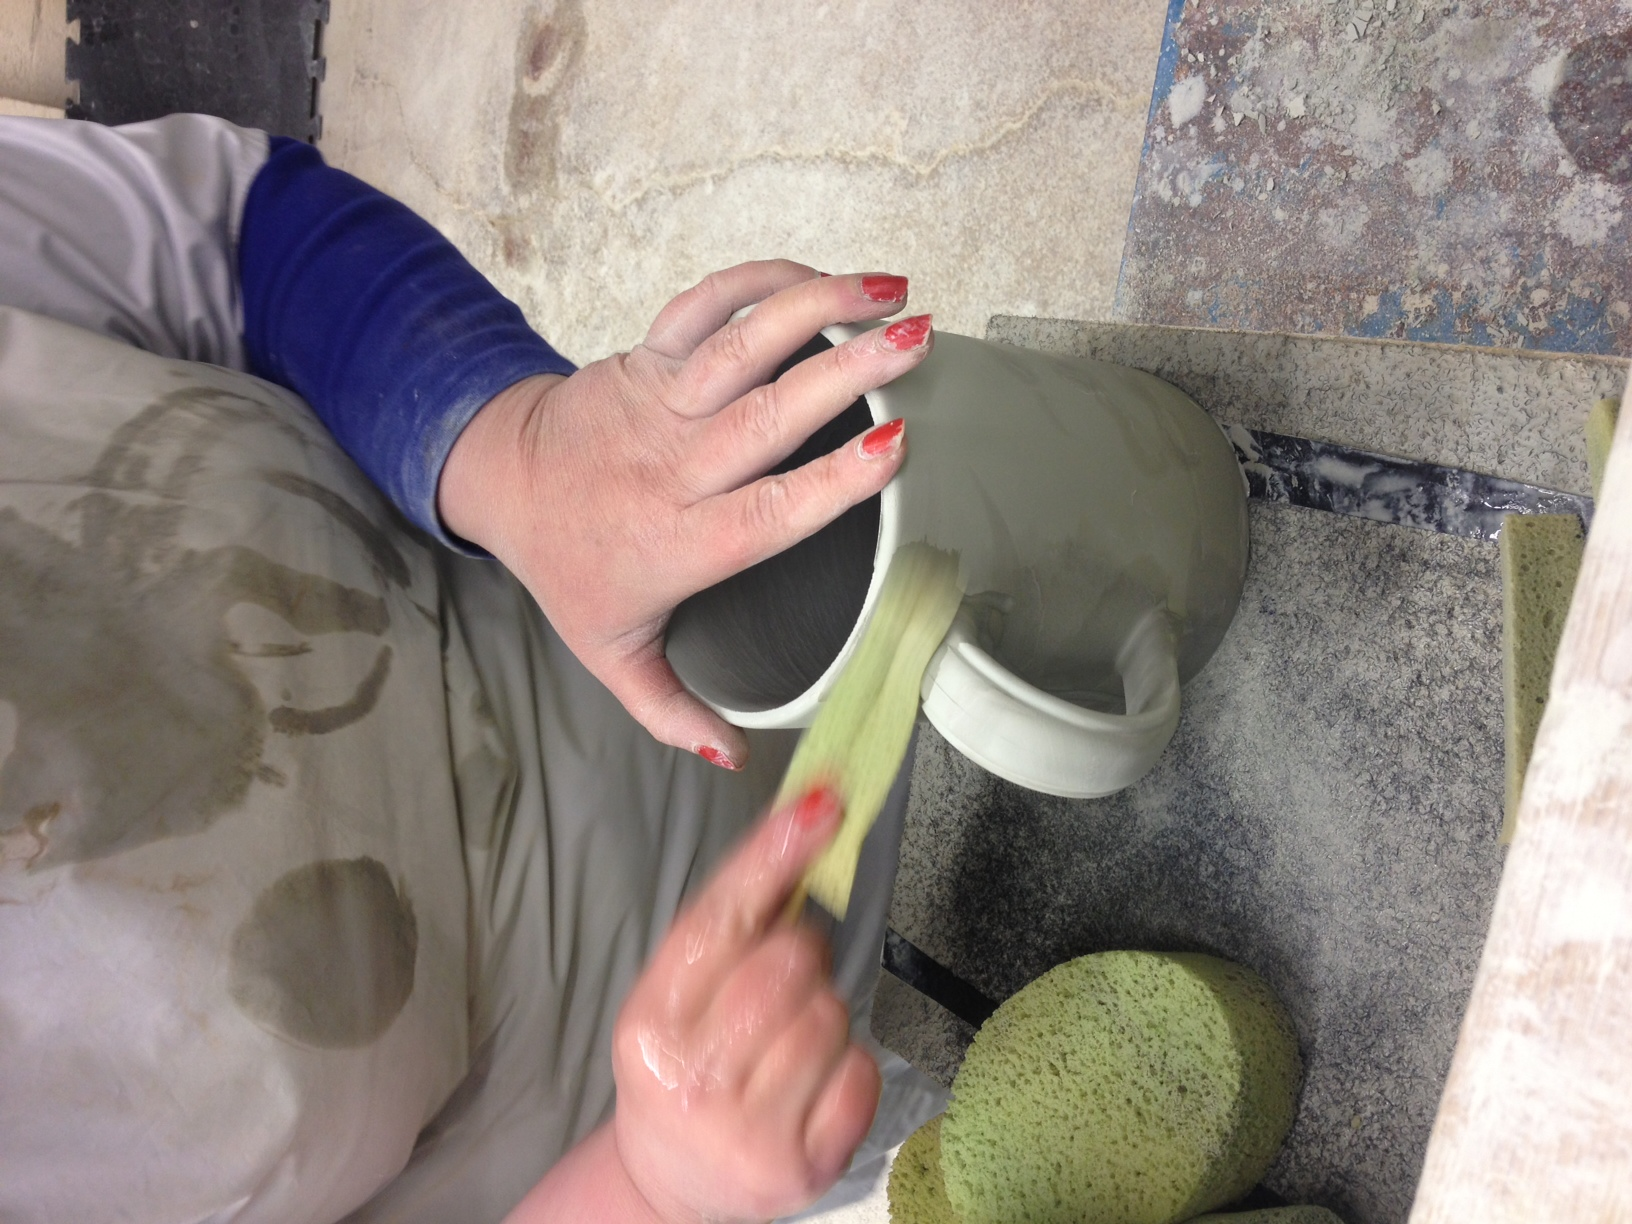 The Sponger, cleaning up any seem lines around the handle and cup.